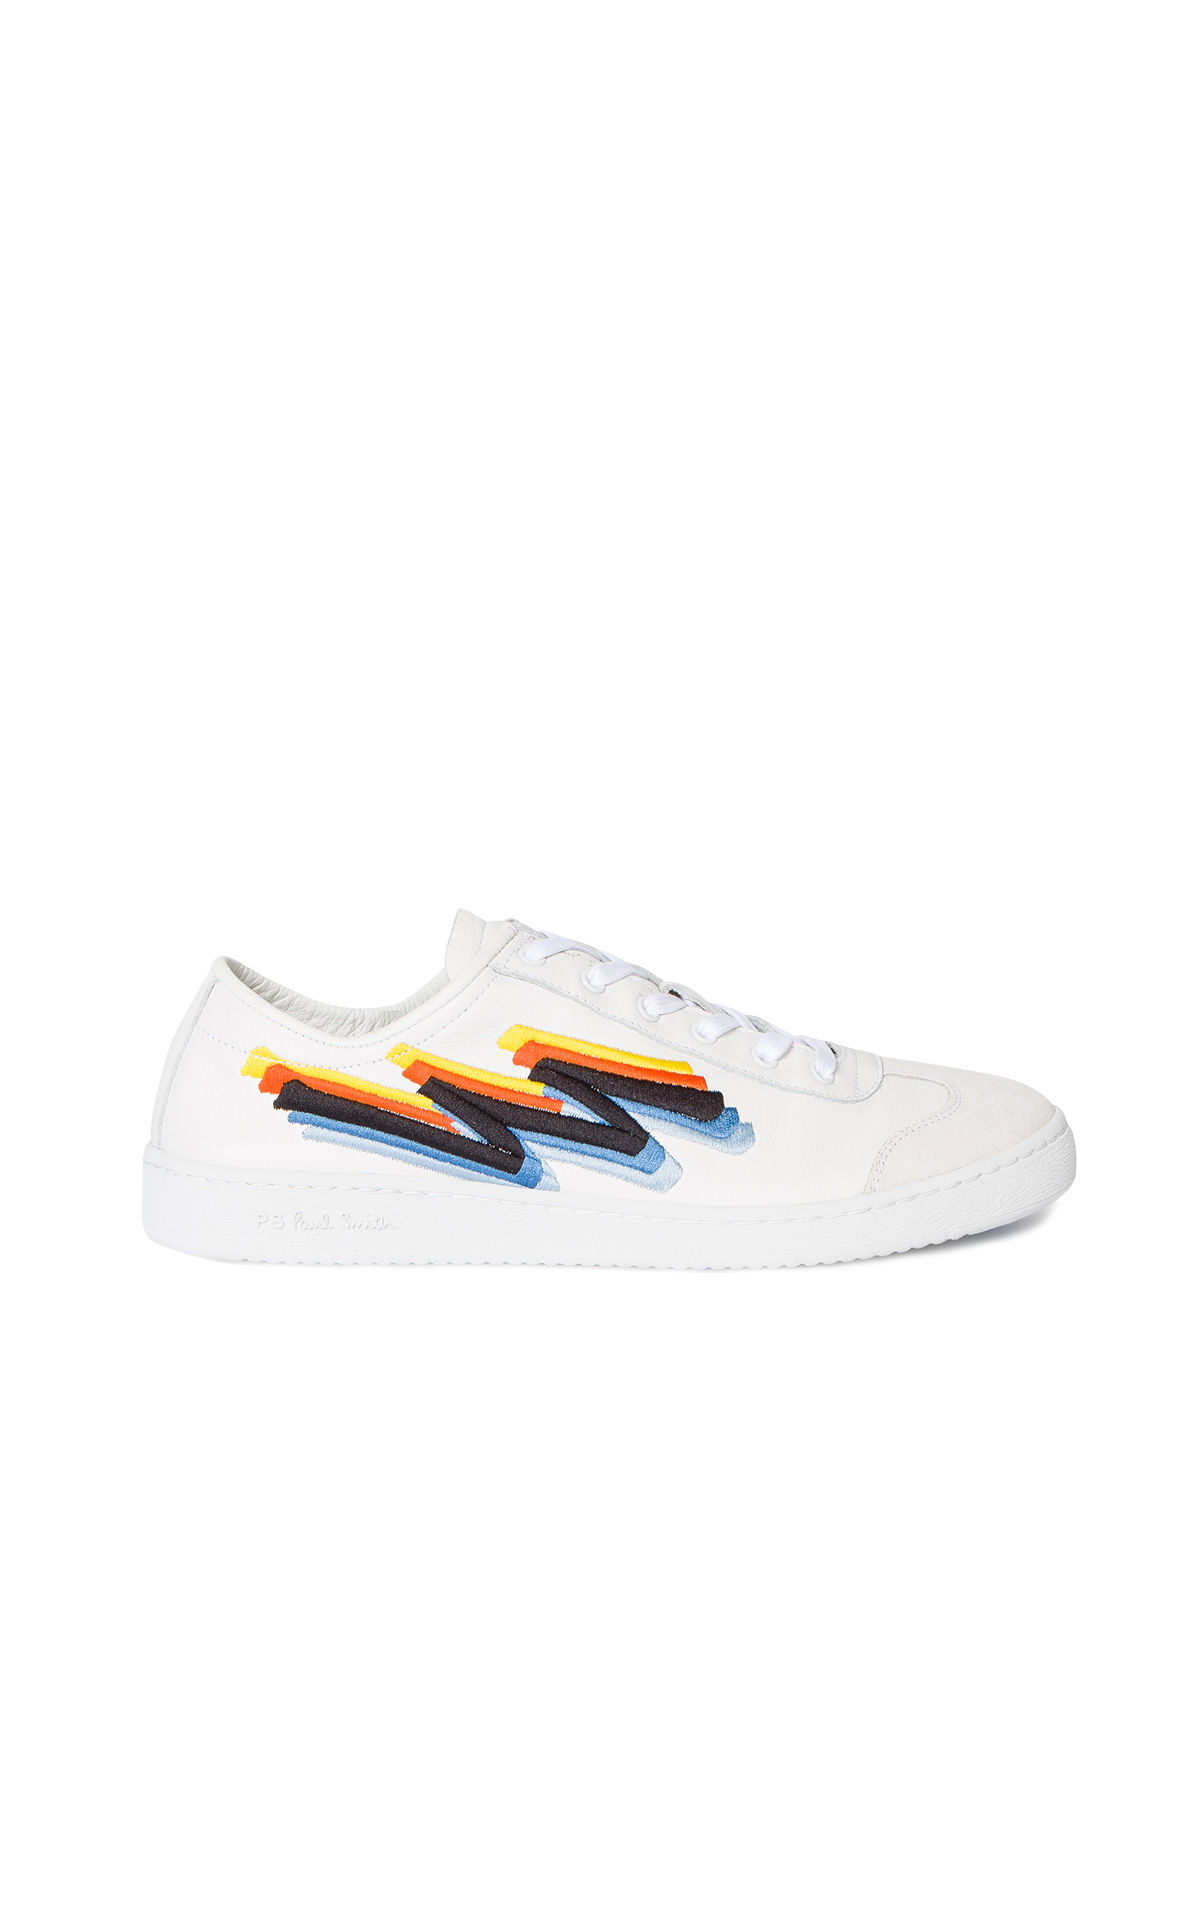 La Vallée Village Paul Smith Ziggy sneakers